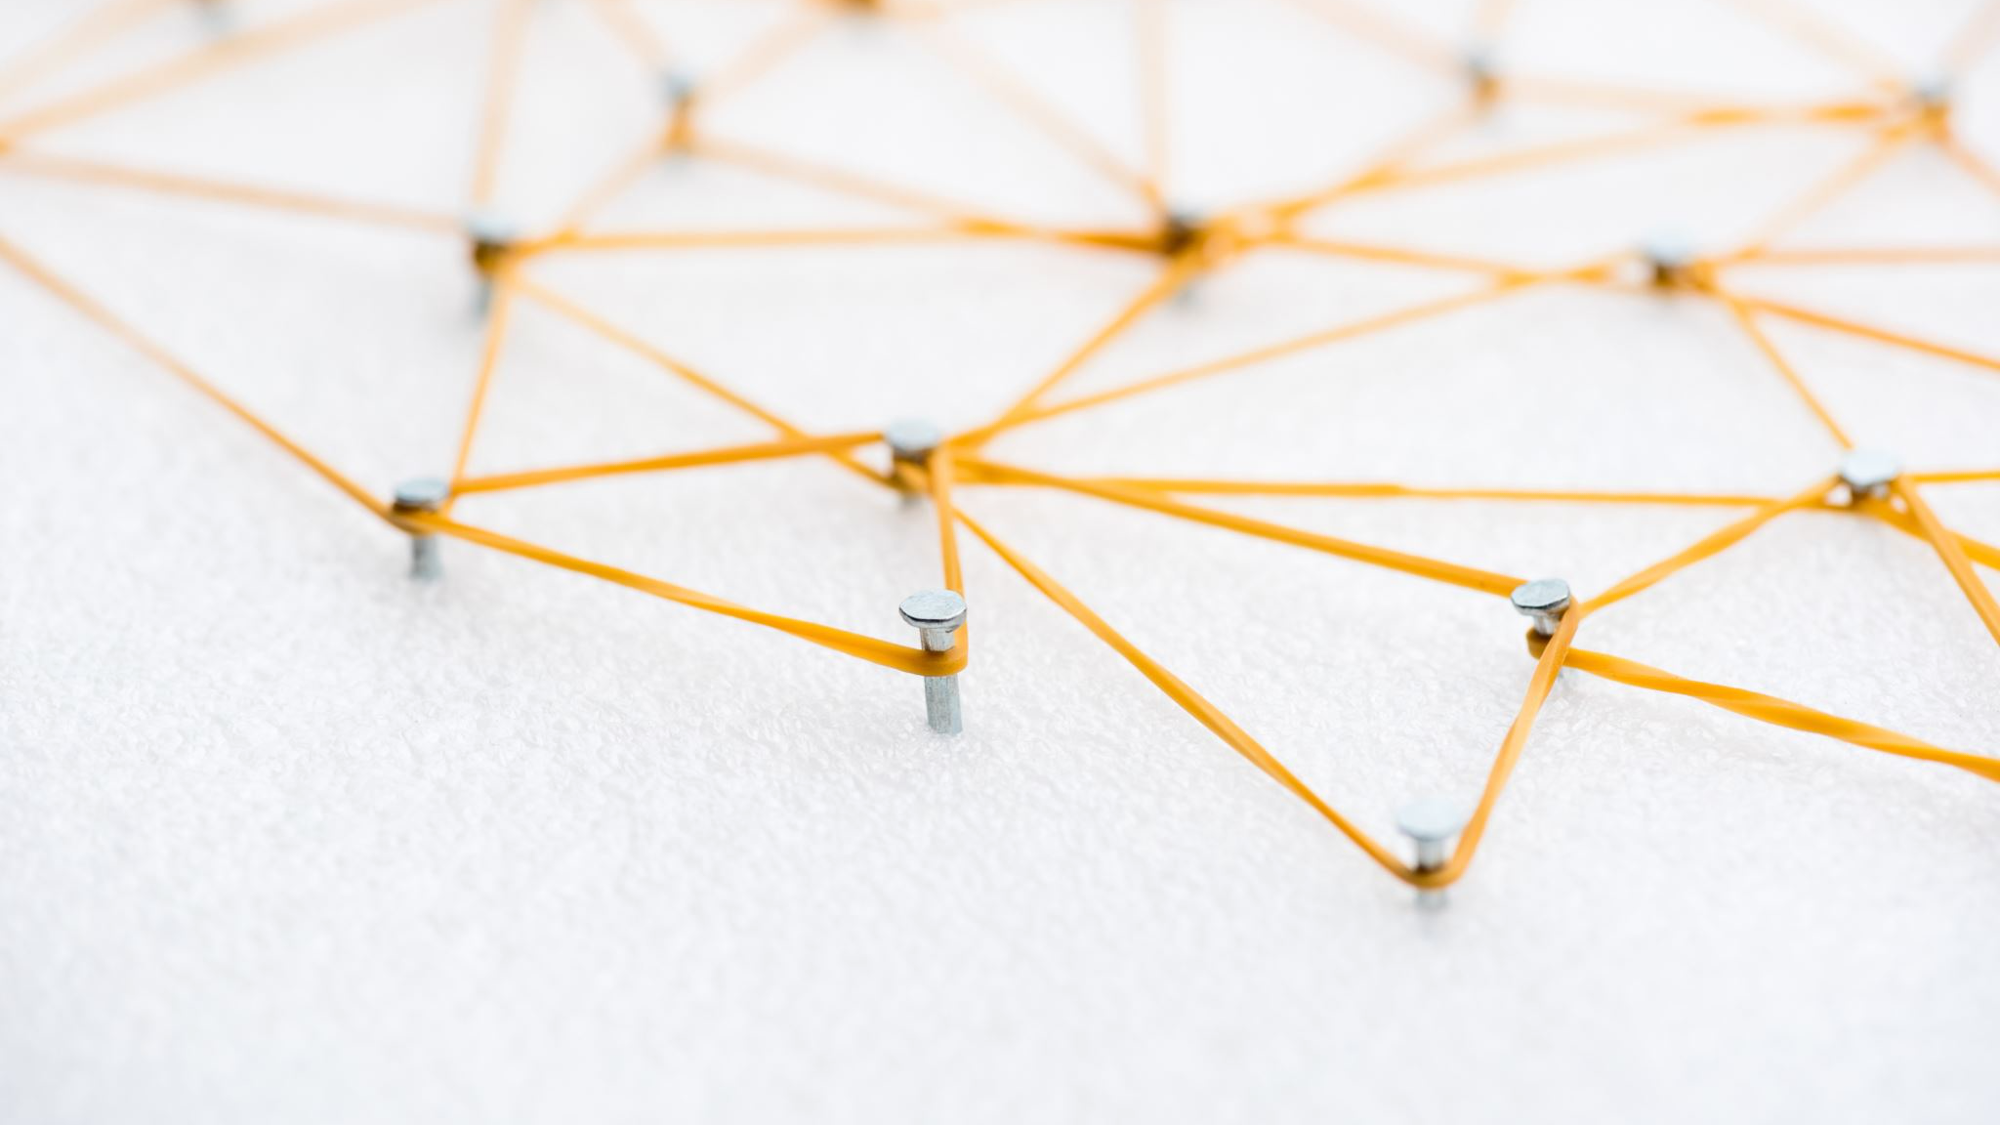 Network diagram using nails and rubber bands